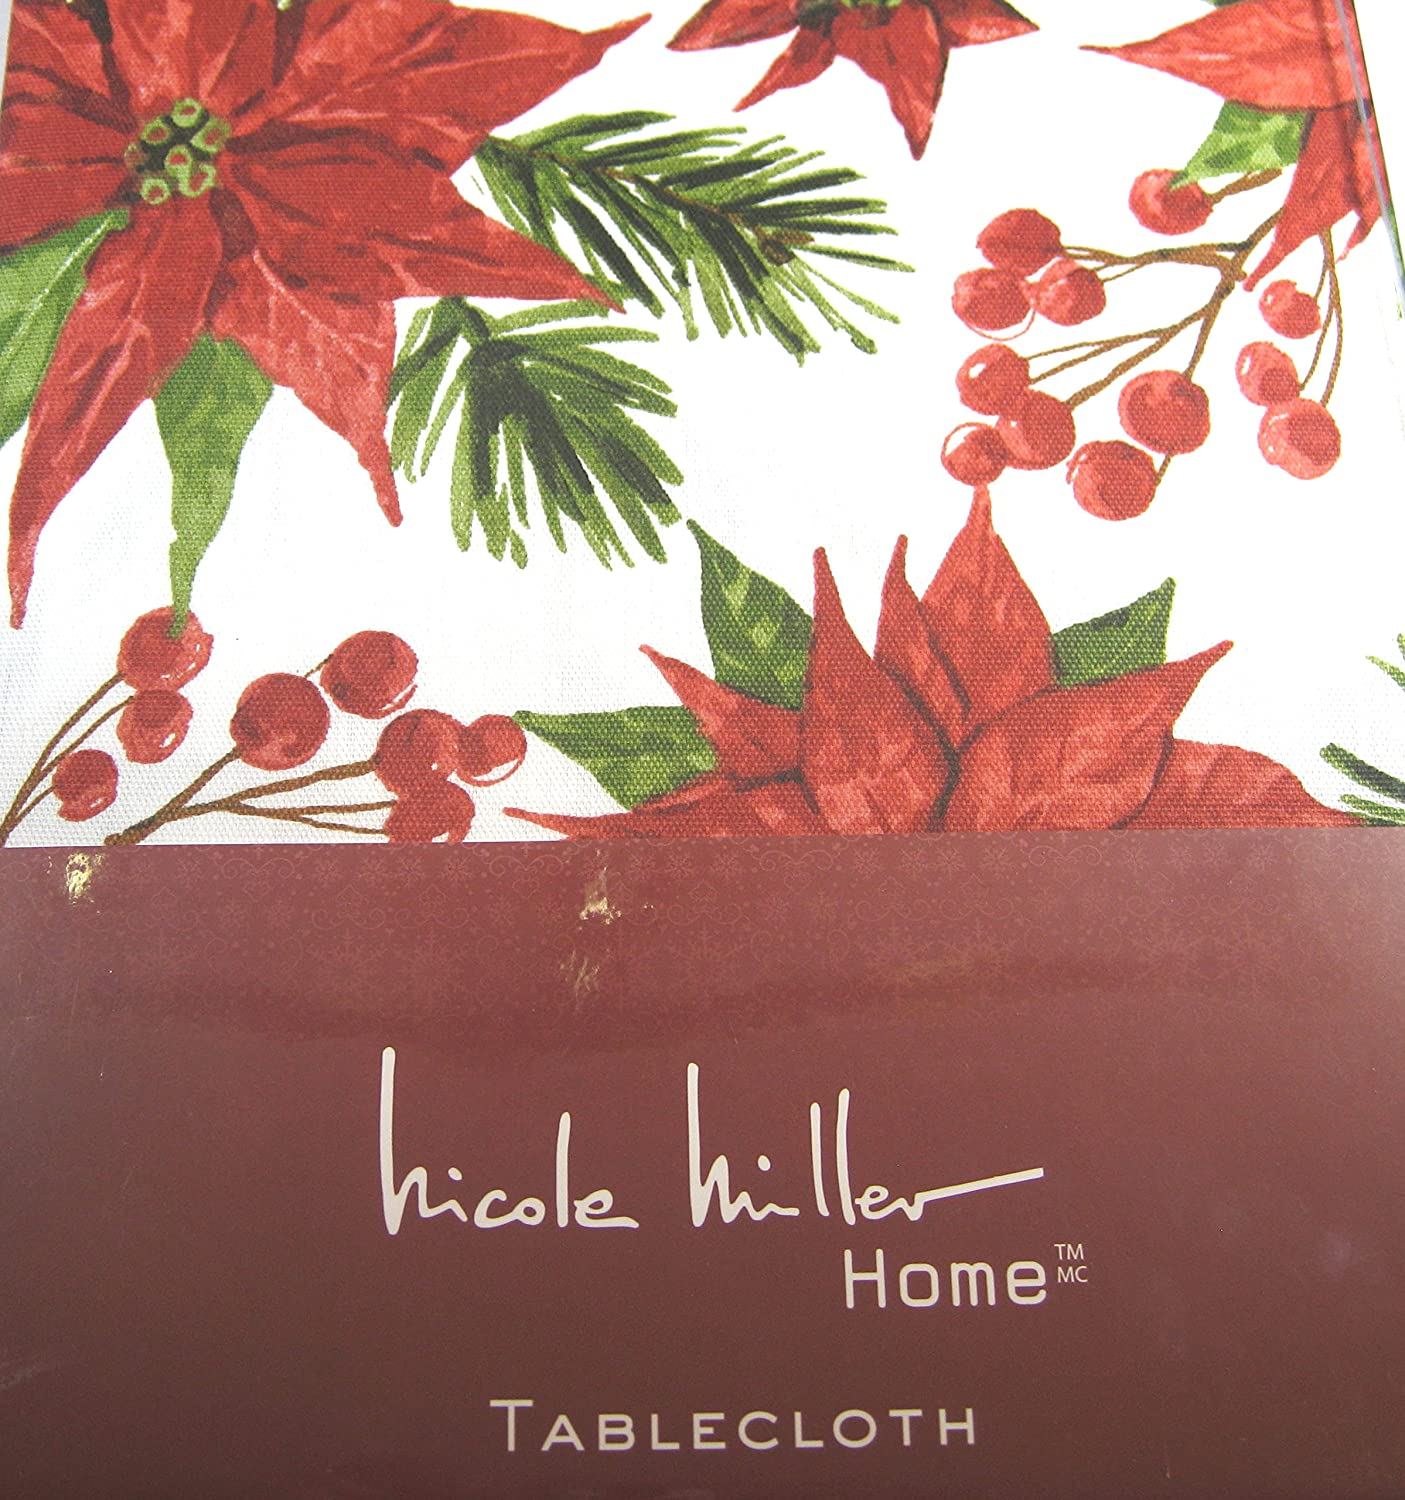 Nicole Miller Noël Poinsettia Nappes 100/% Coton Tailles Assorties obl/&rd